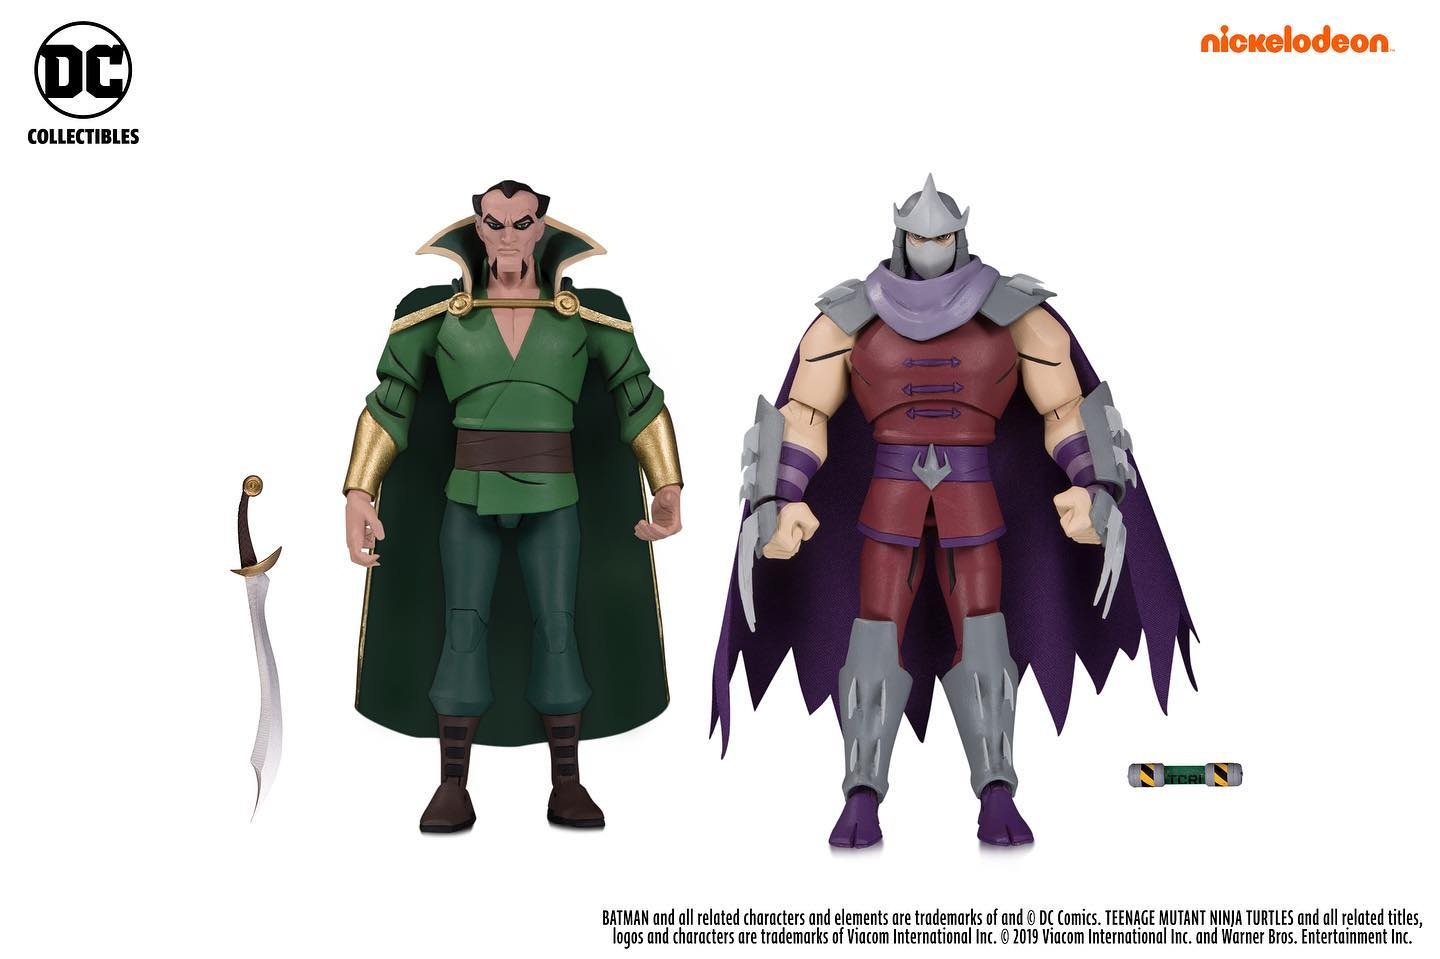 Batman vs TMNT Shredder and Ras al Ghul